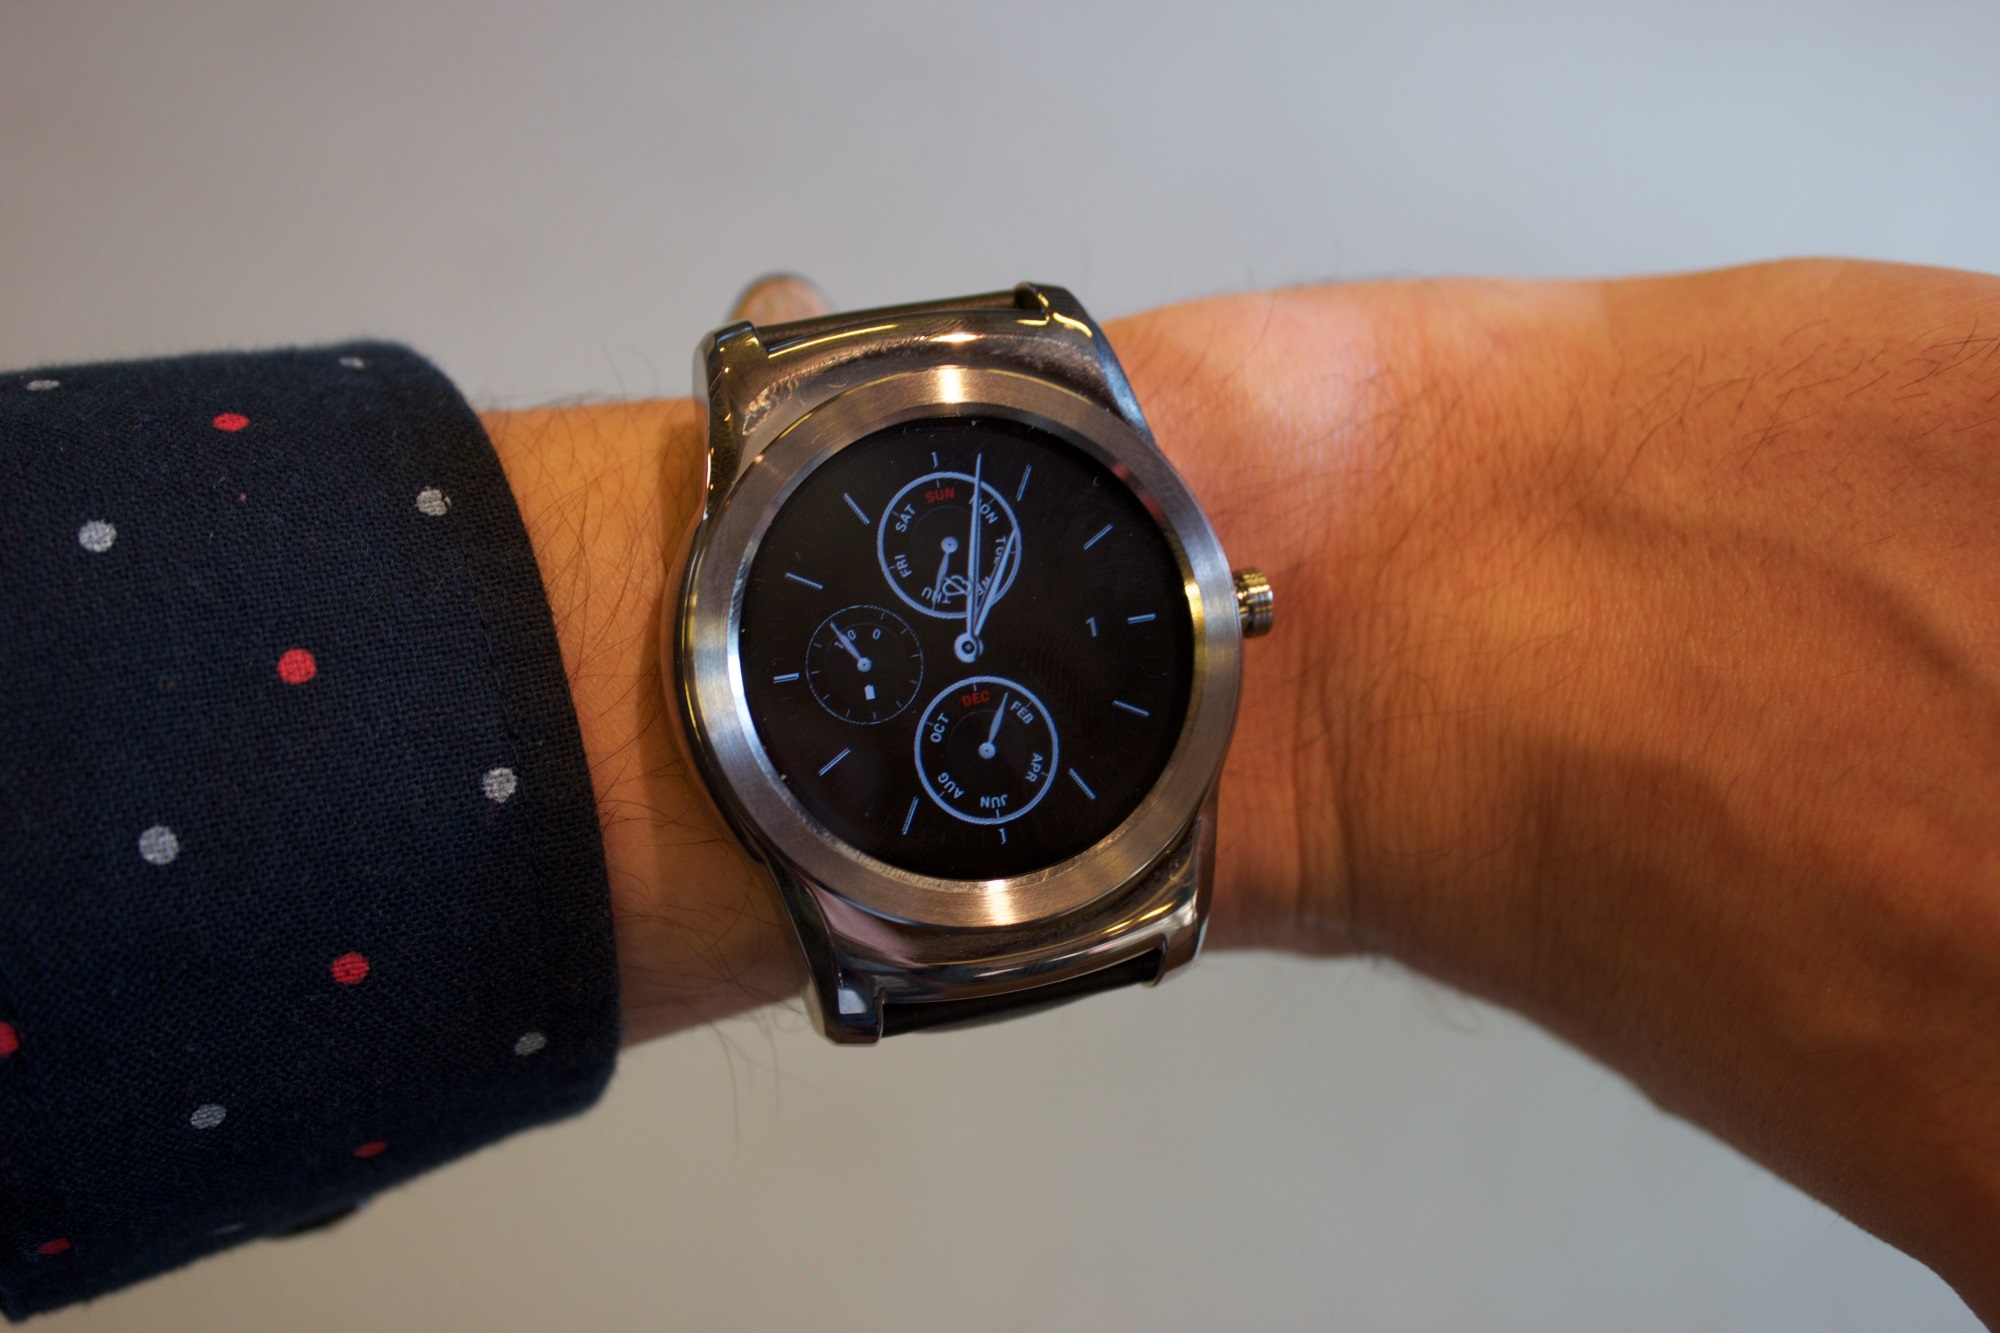 LG Watch Urbane - hands-on (2)